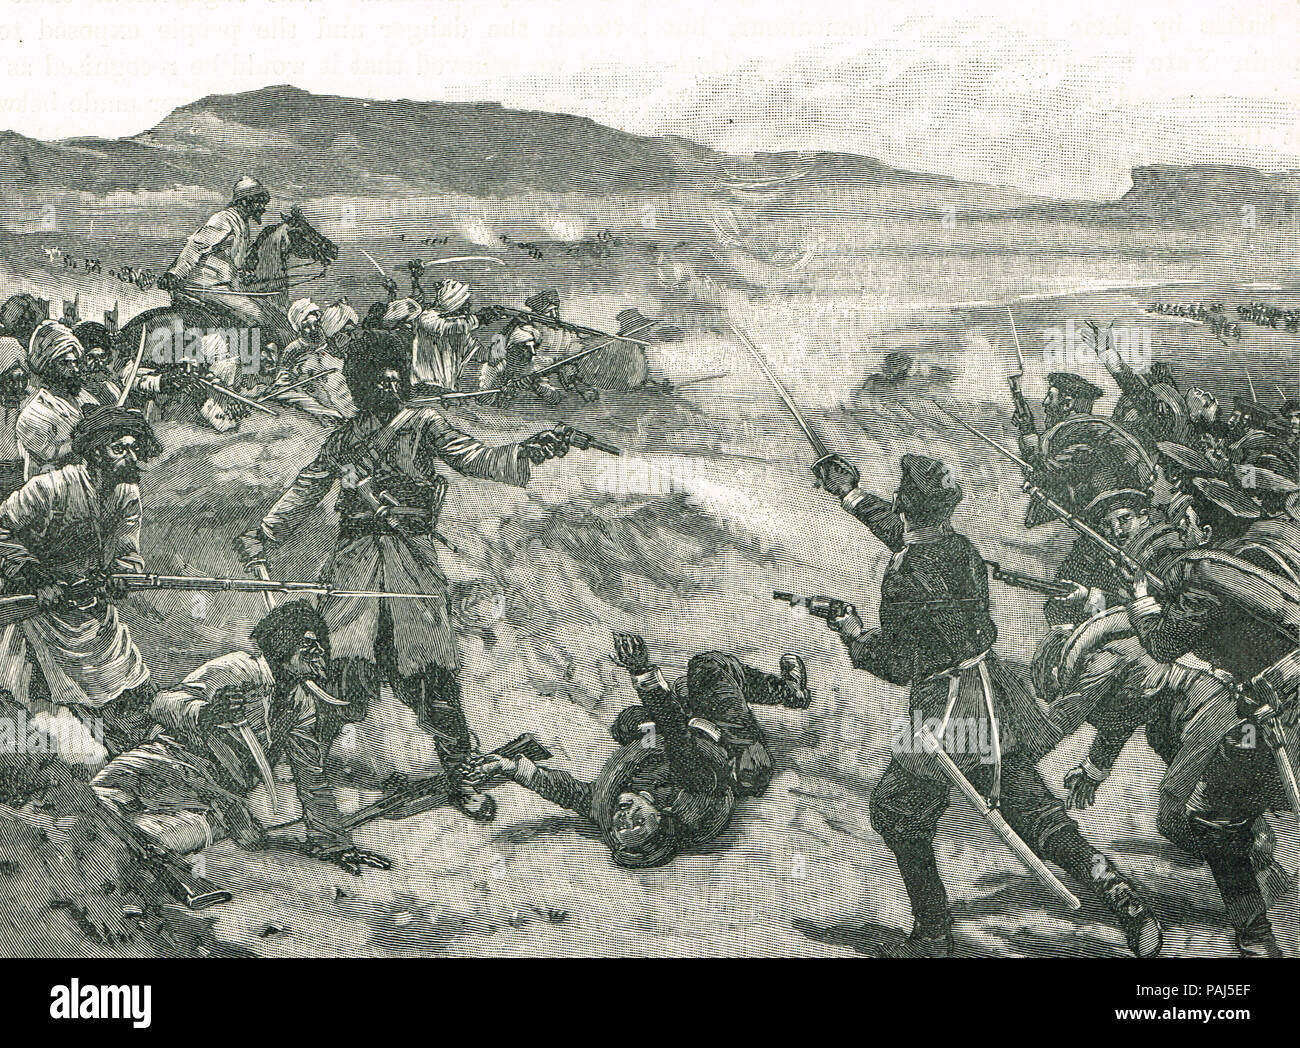 Russian encounter with Afghans, Pul-i-Khishty AKA Brick Bridge, The Panjdeh incident, March 30 1885 - Stock Image